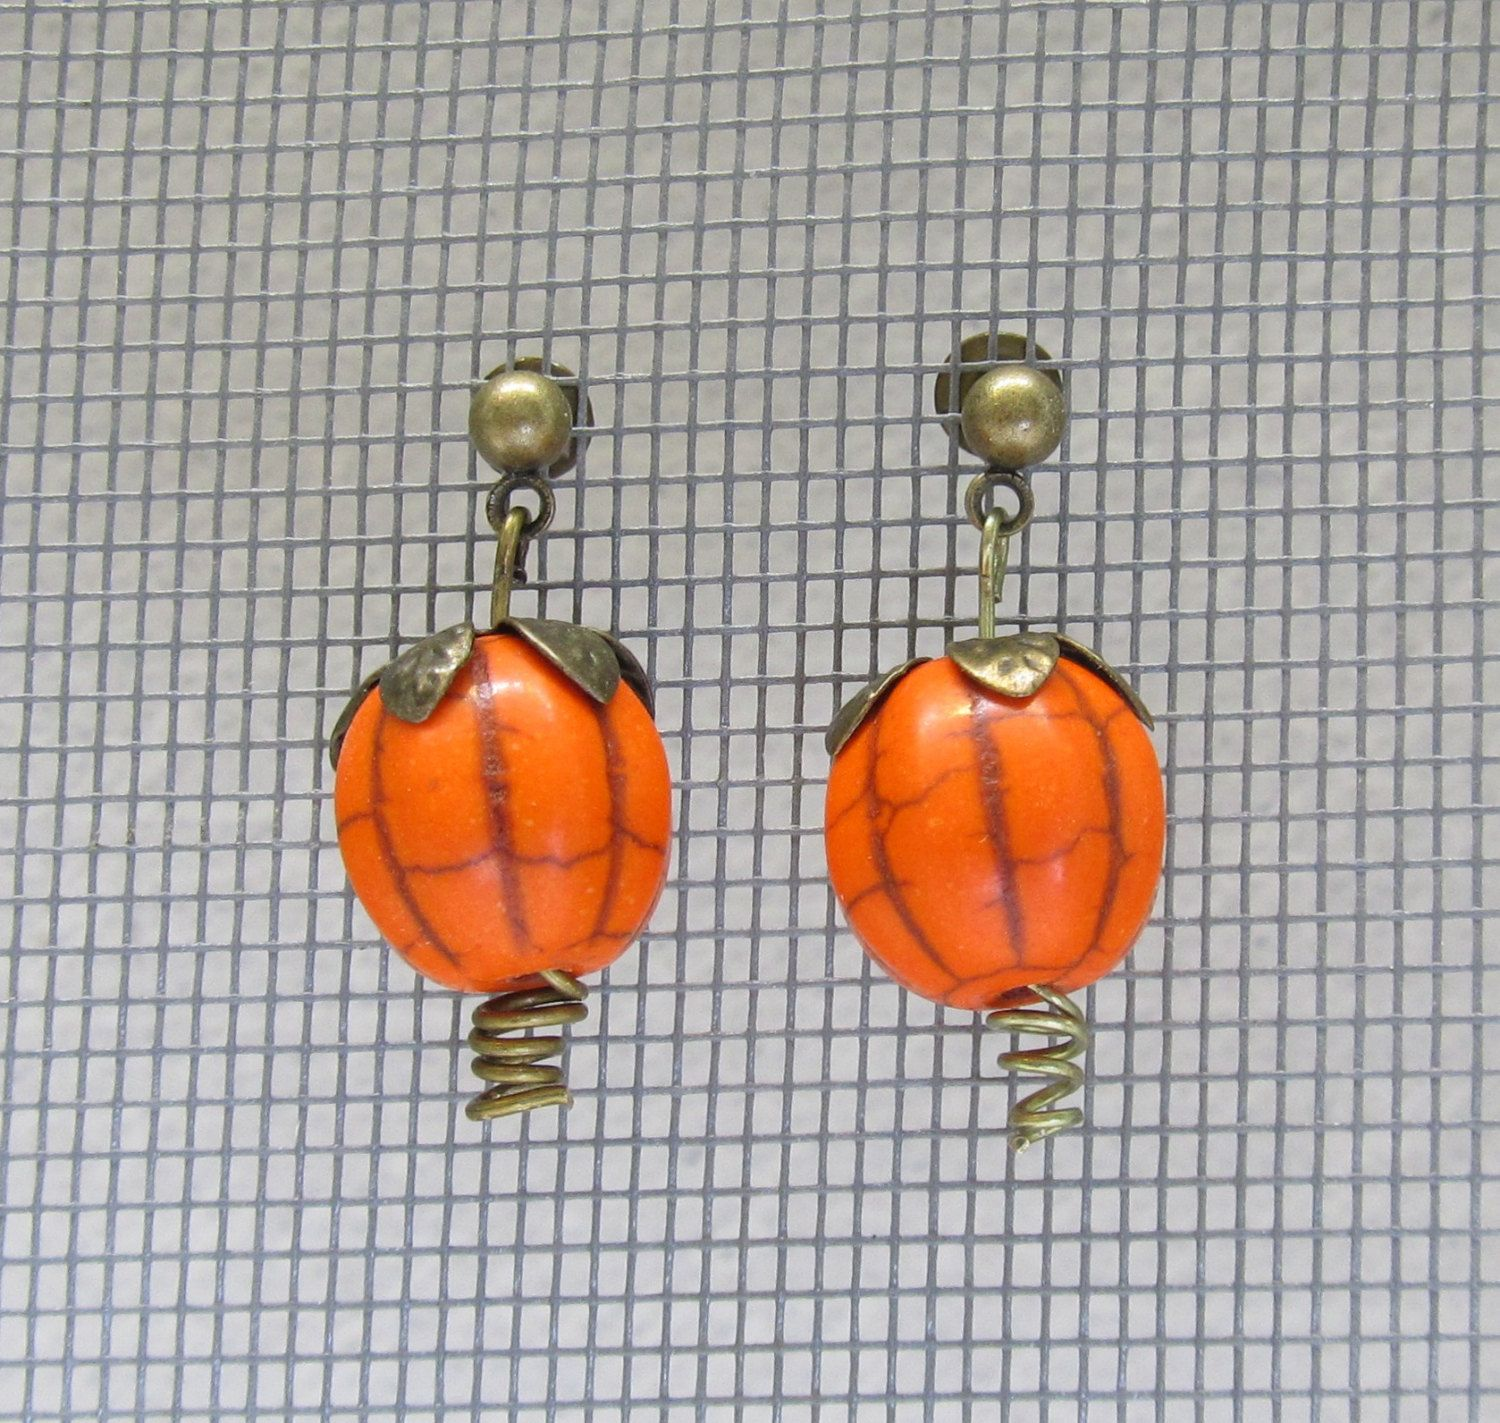 Halloween pumpkin earrings gift ideas for her fall fashion autumn trends (12.00 USD) by MontanaMagic